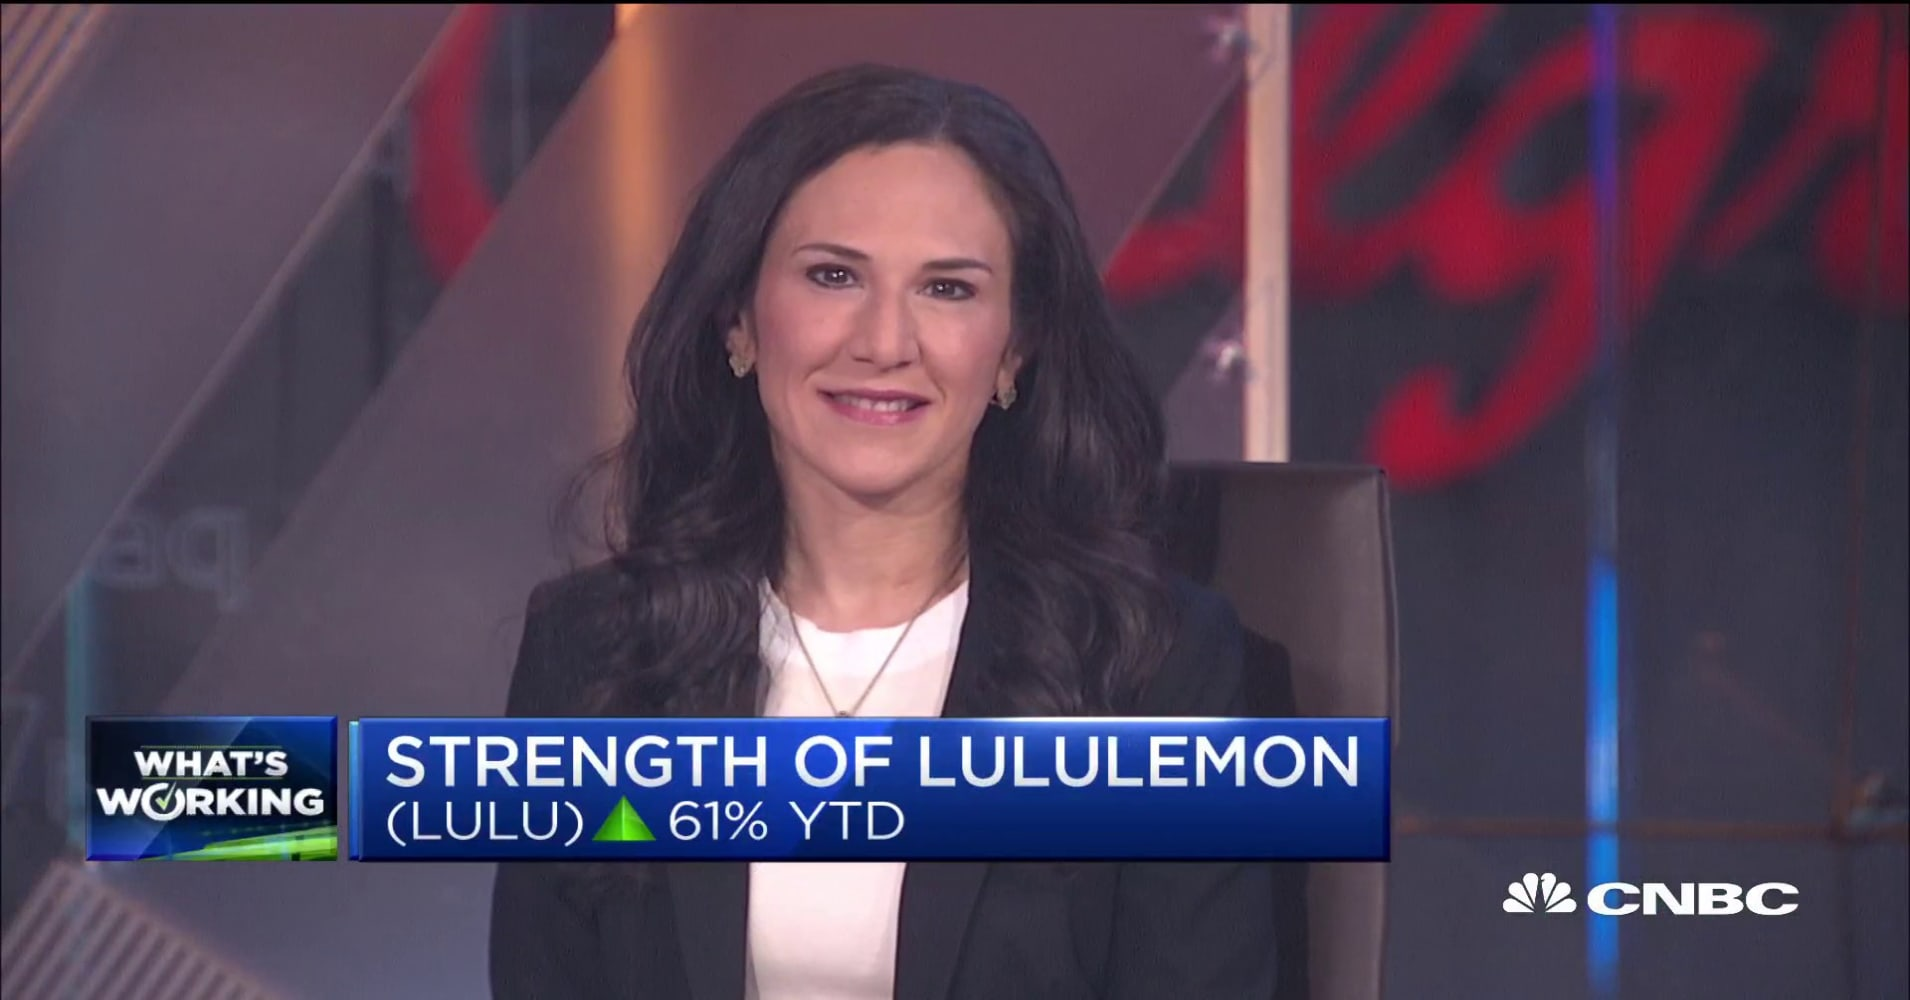 An analyst explains what LuLuLemon is doing differently than other retailers